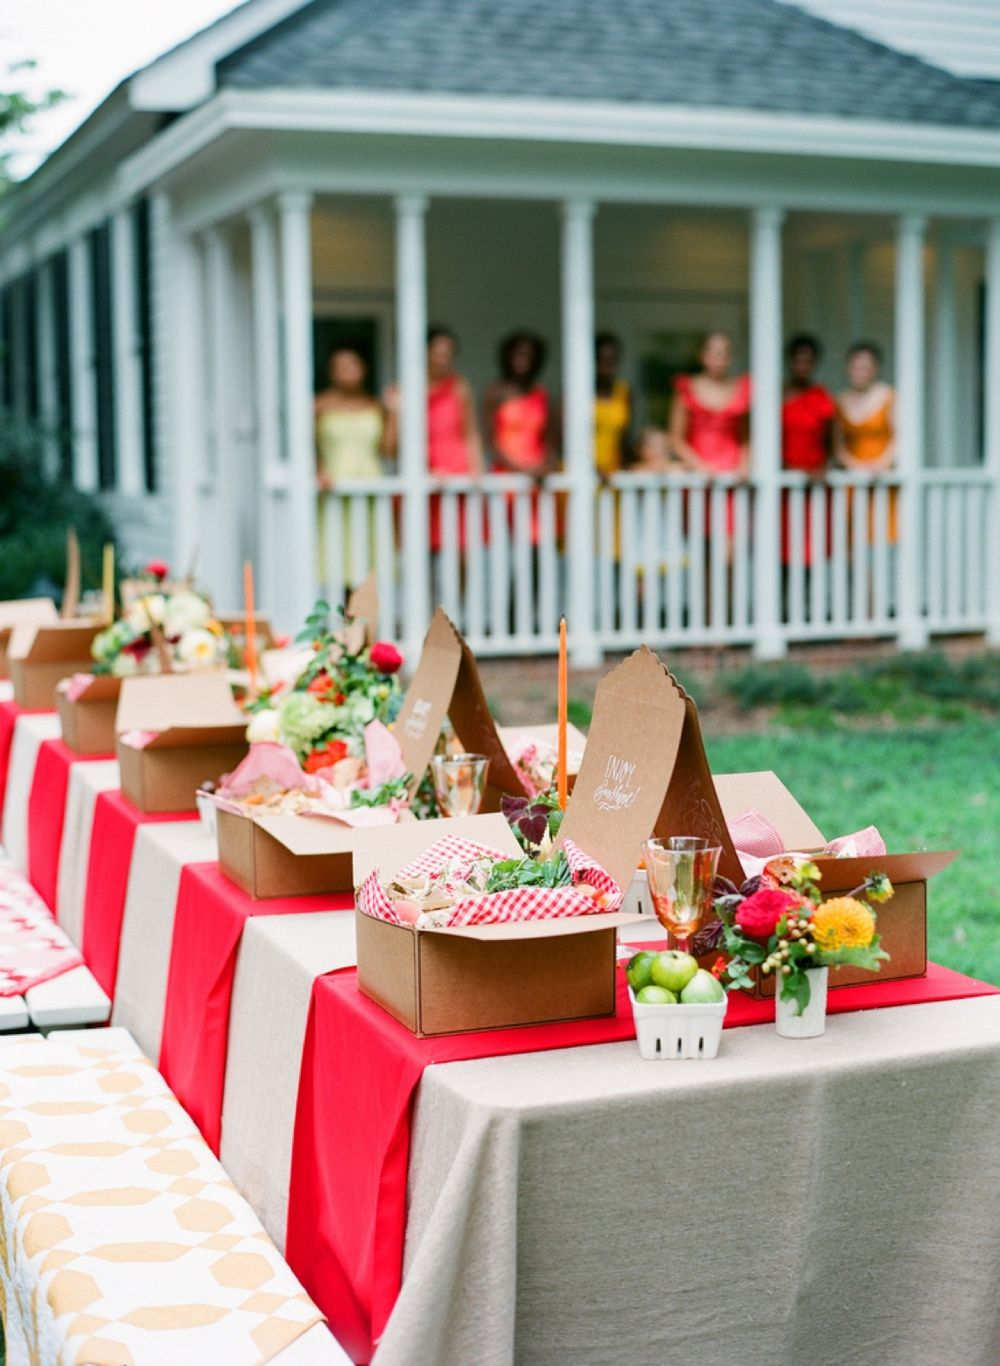 50 outdoor party ideas you should try out this summer picnics